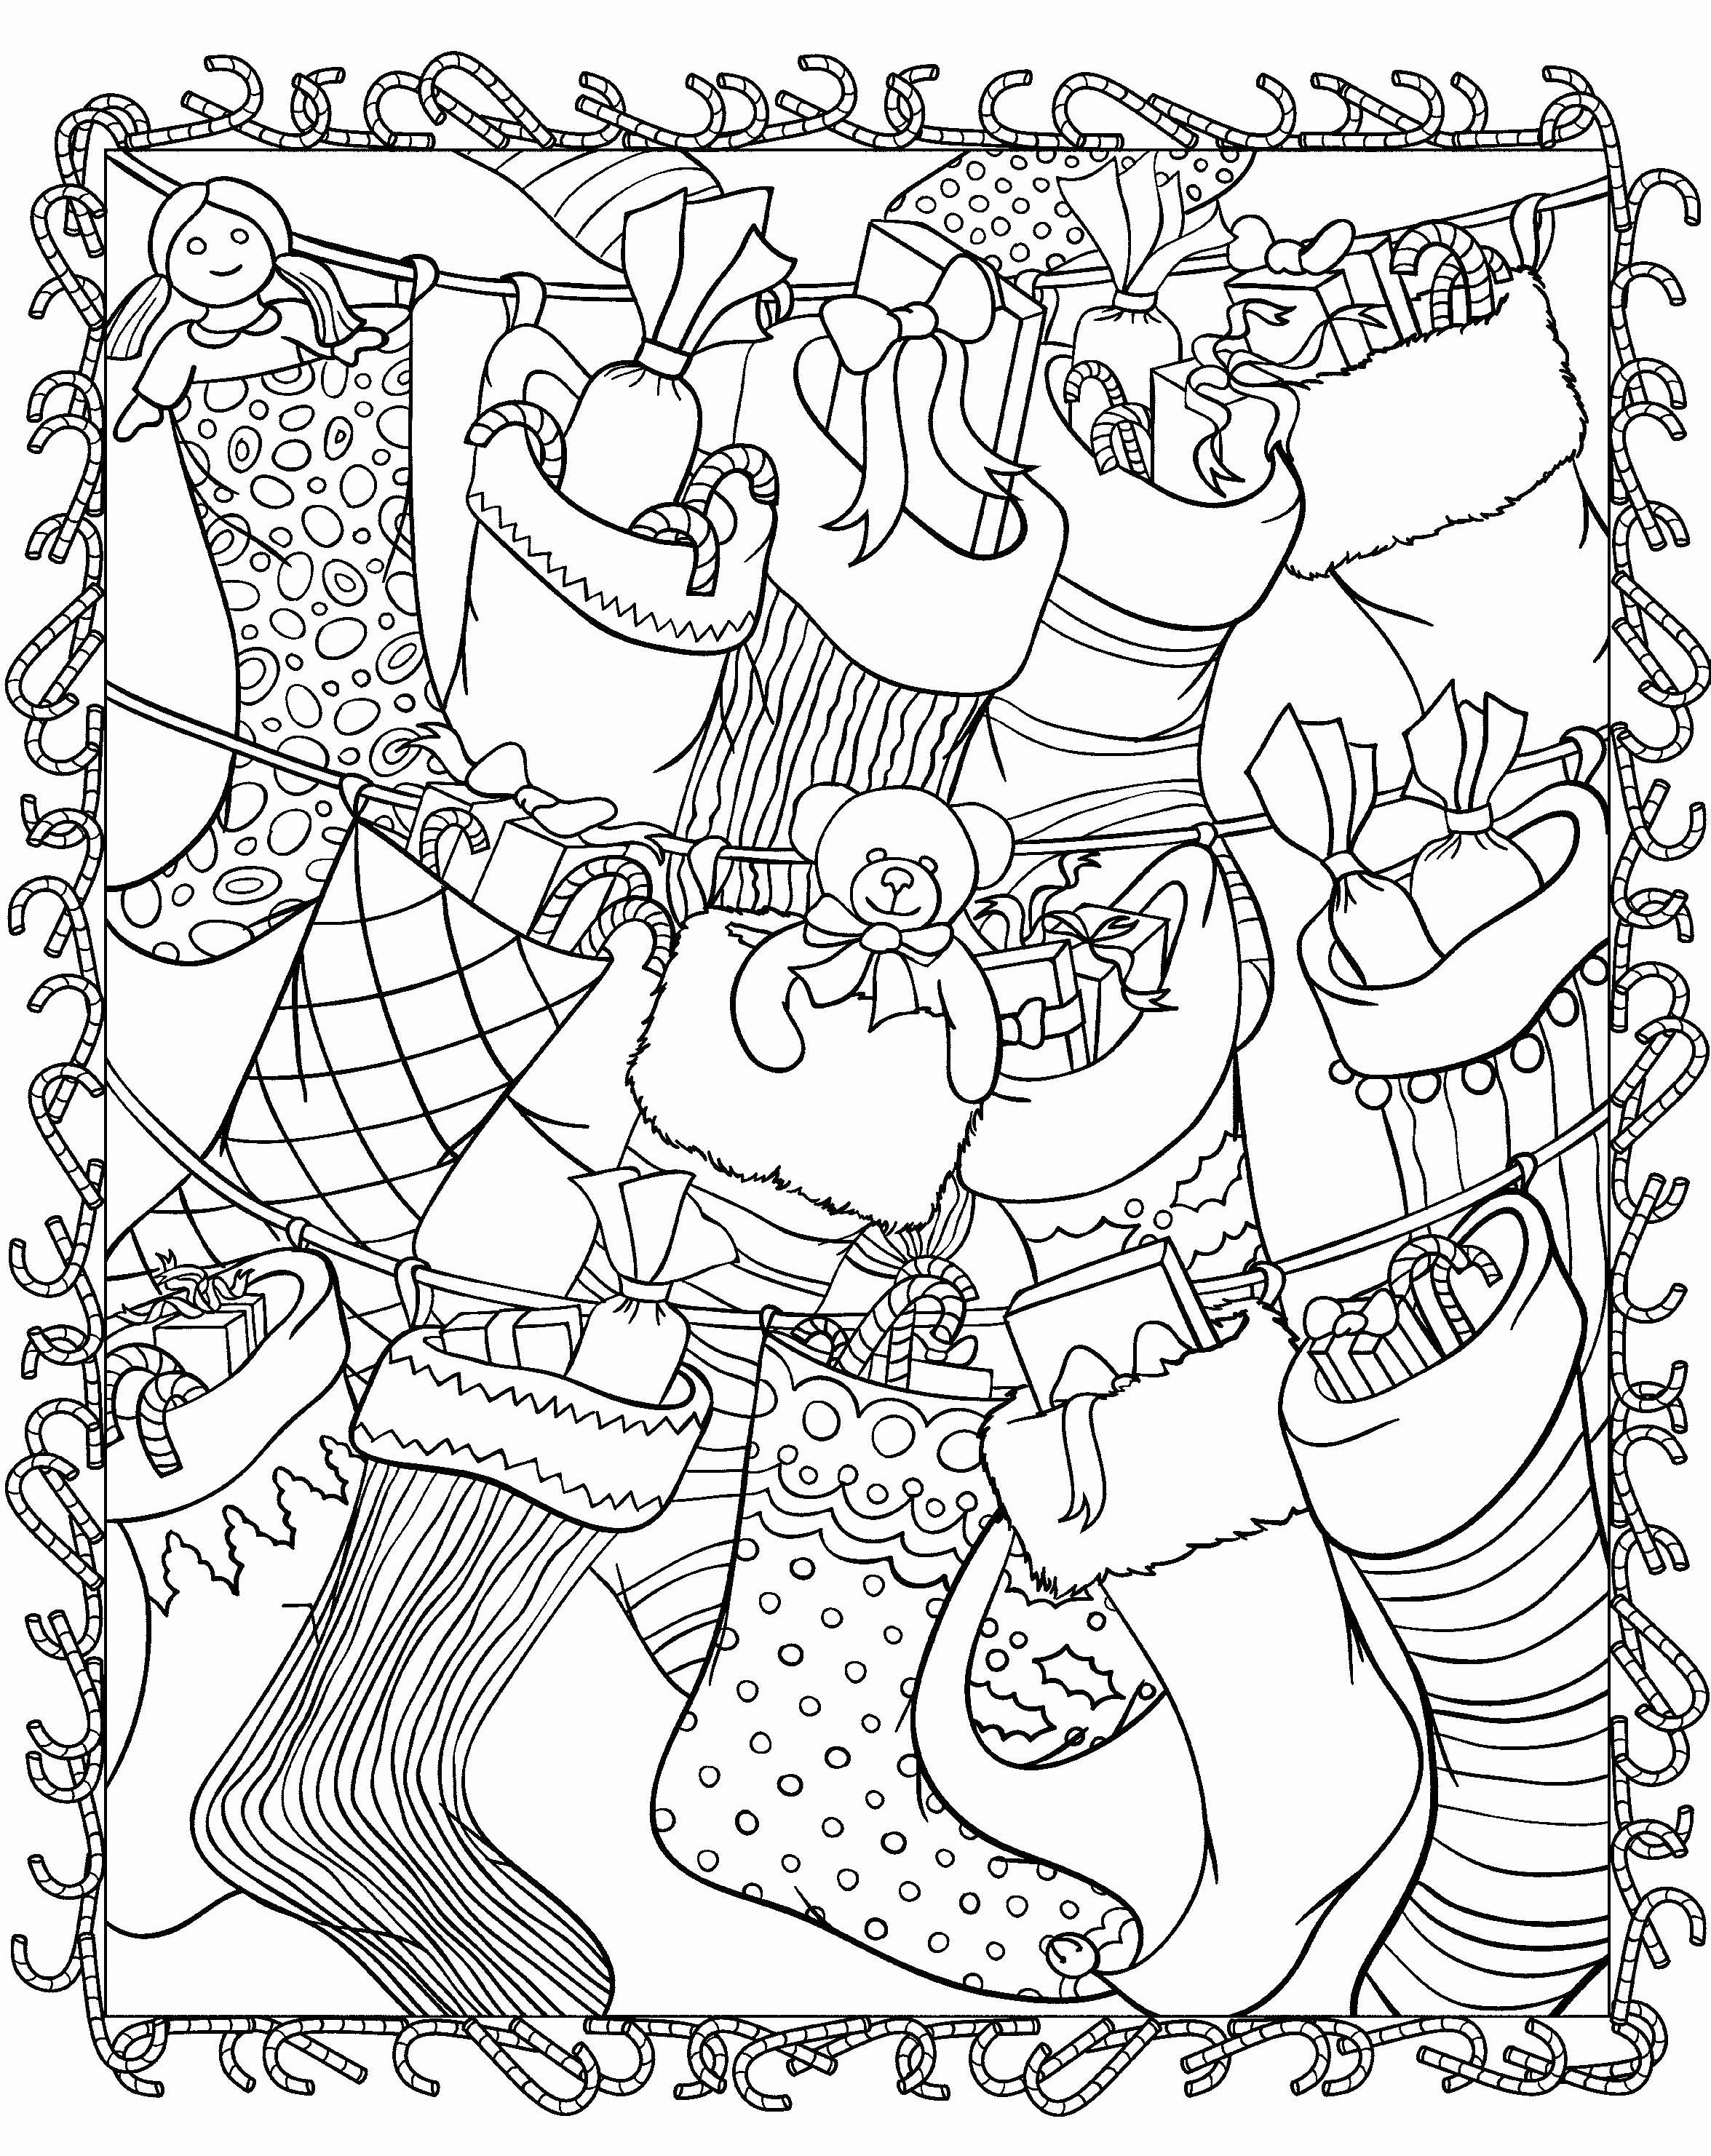 Free Coloring Pages Of End Of School Last Day Of School Coloring ... | 2963x2351